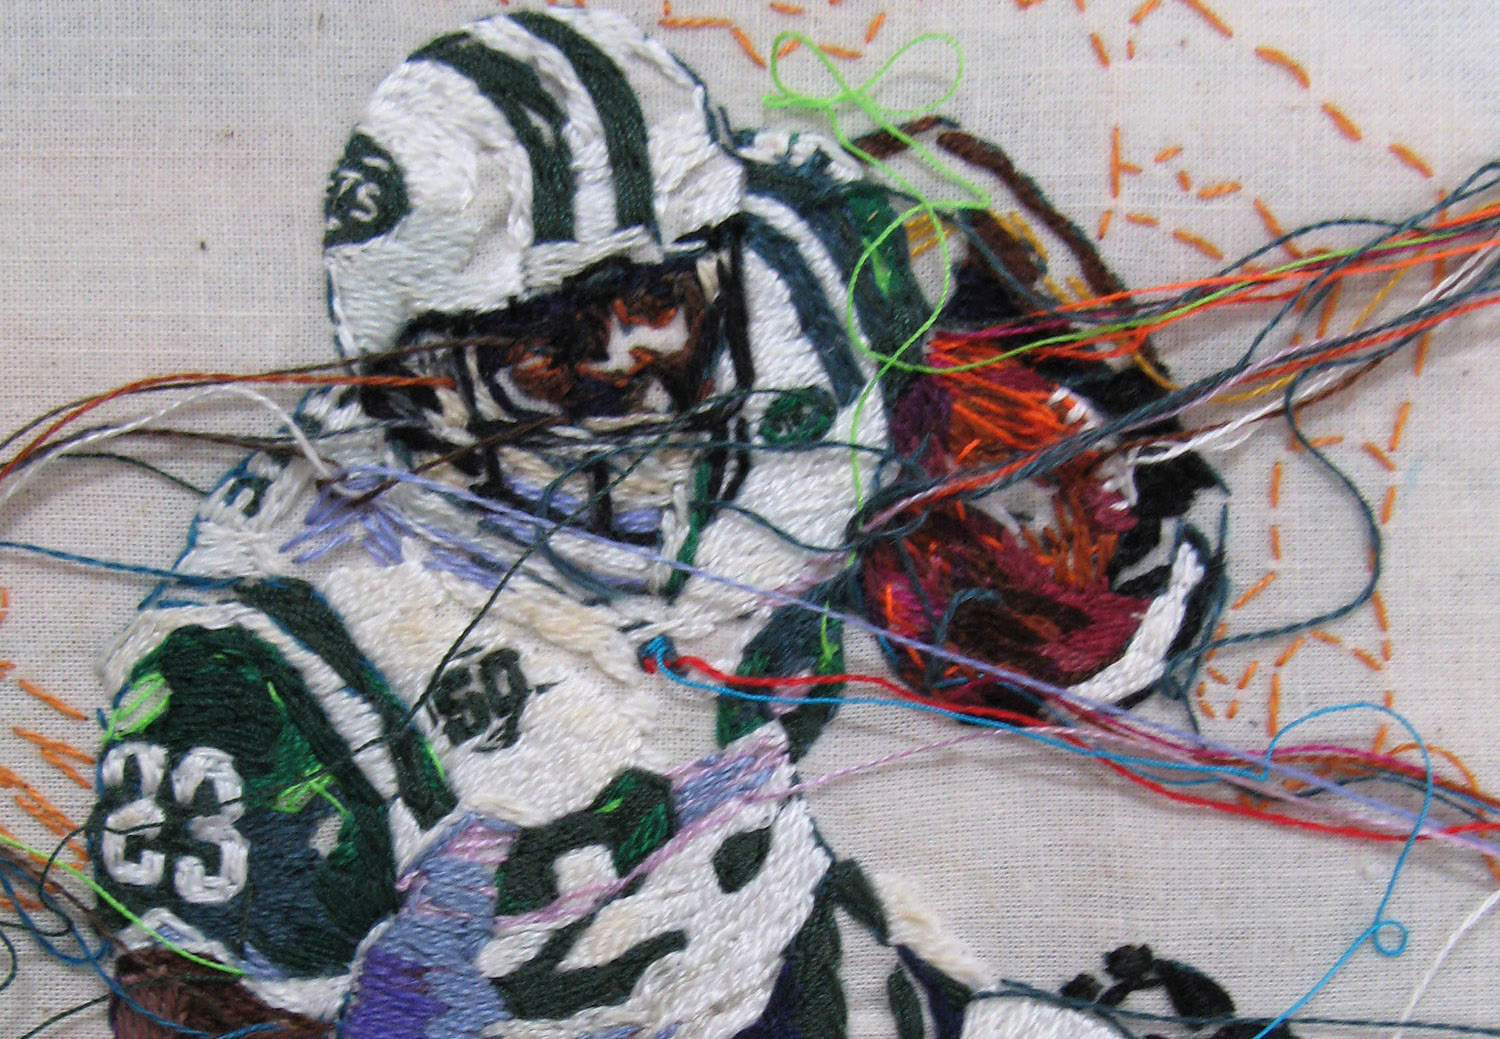 A detail of <i>Shonn Greene</i> by artist Lauren DiCioccio, which shows the intricate embroidered patterns employed in her work. Image courtesy of the artist and the Jack Fischer Gallery.